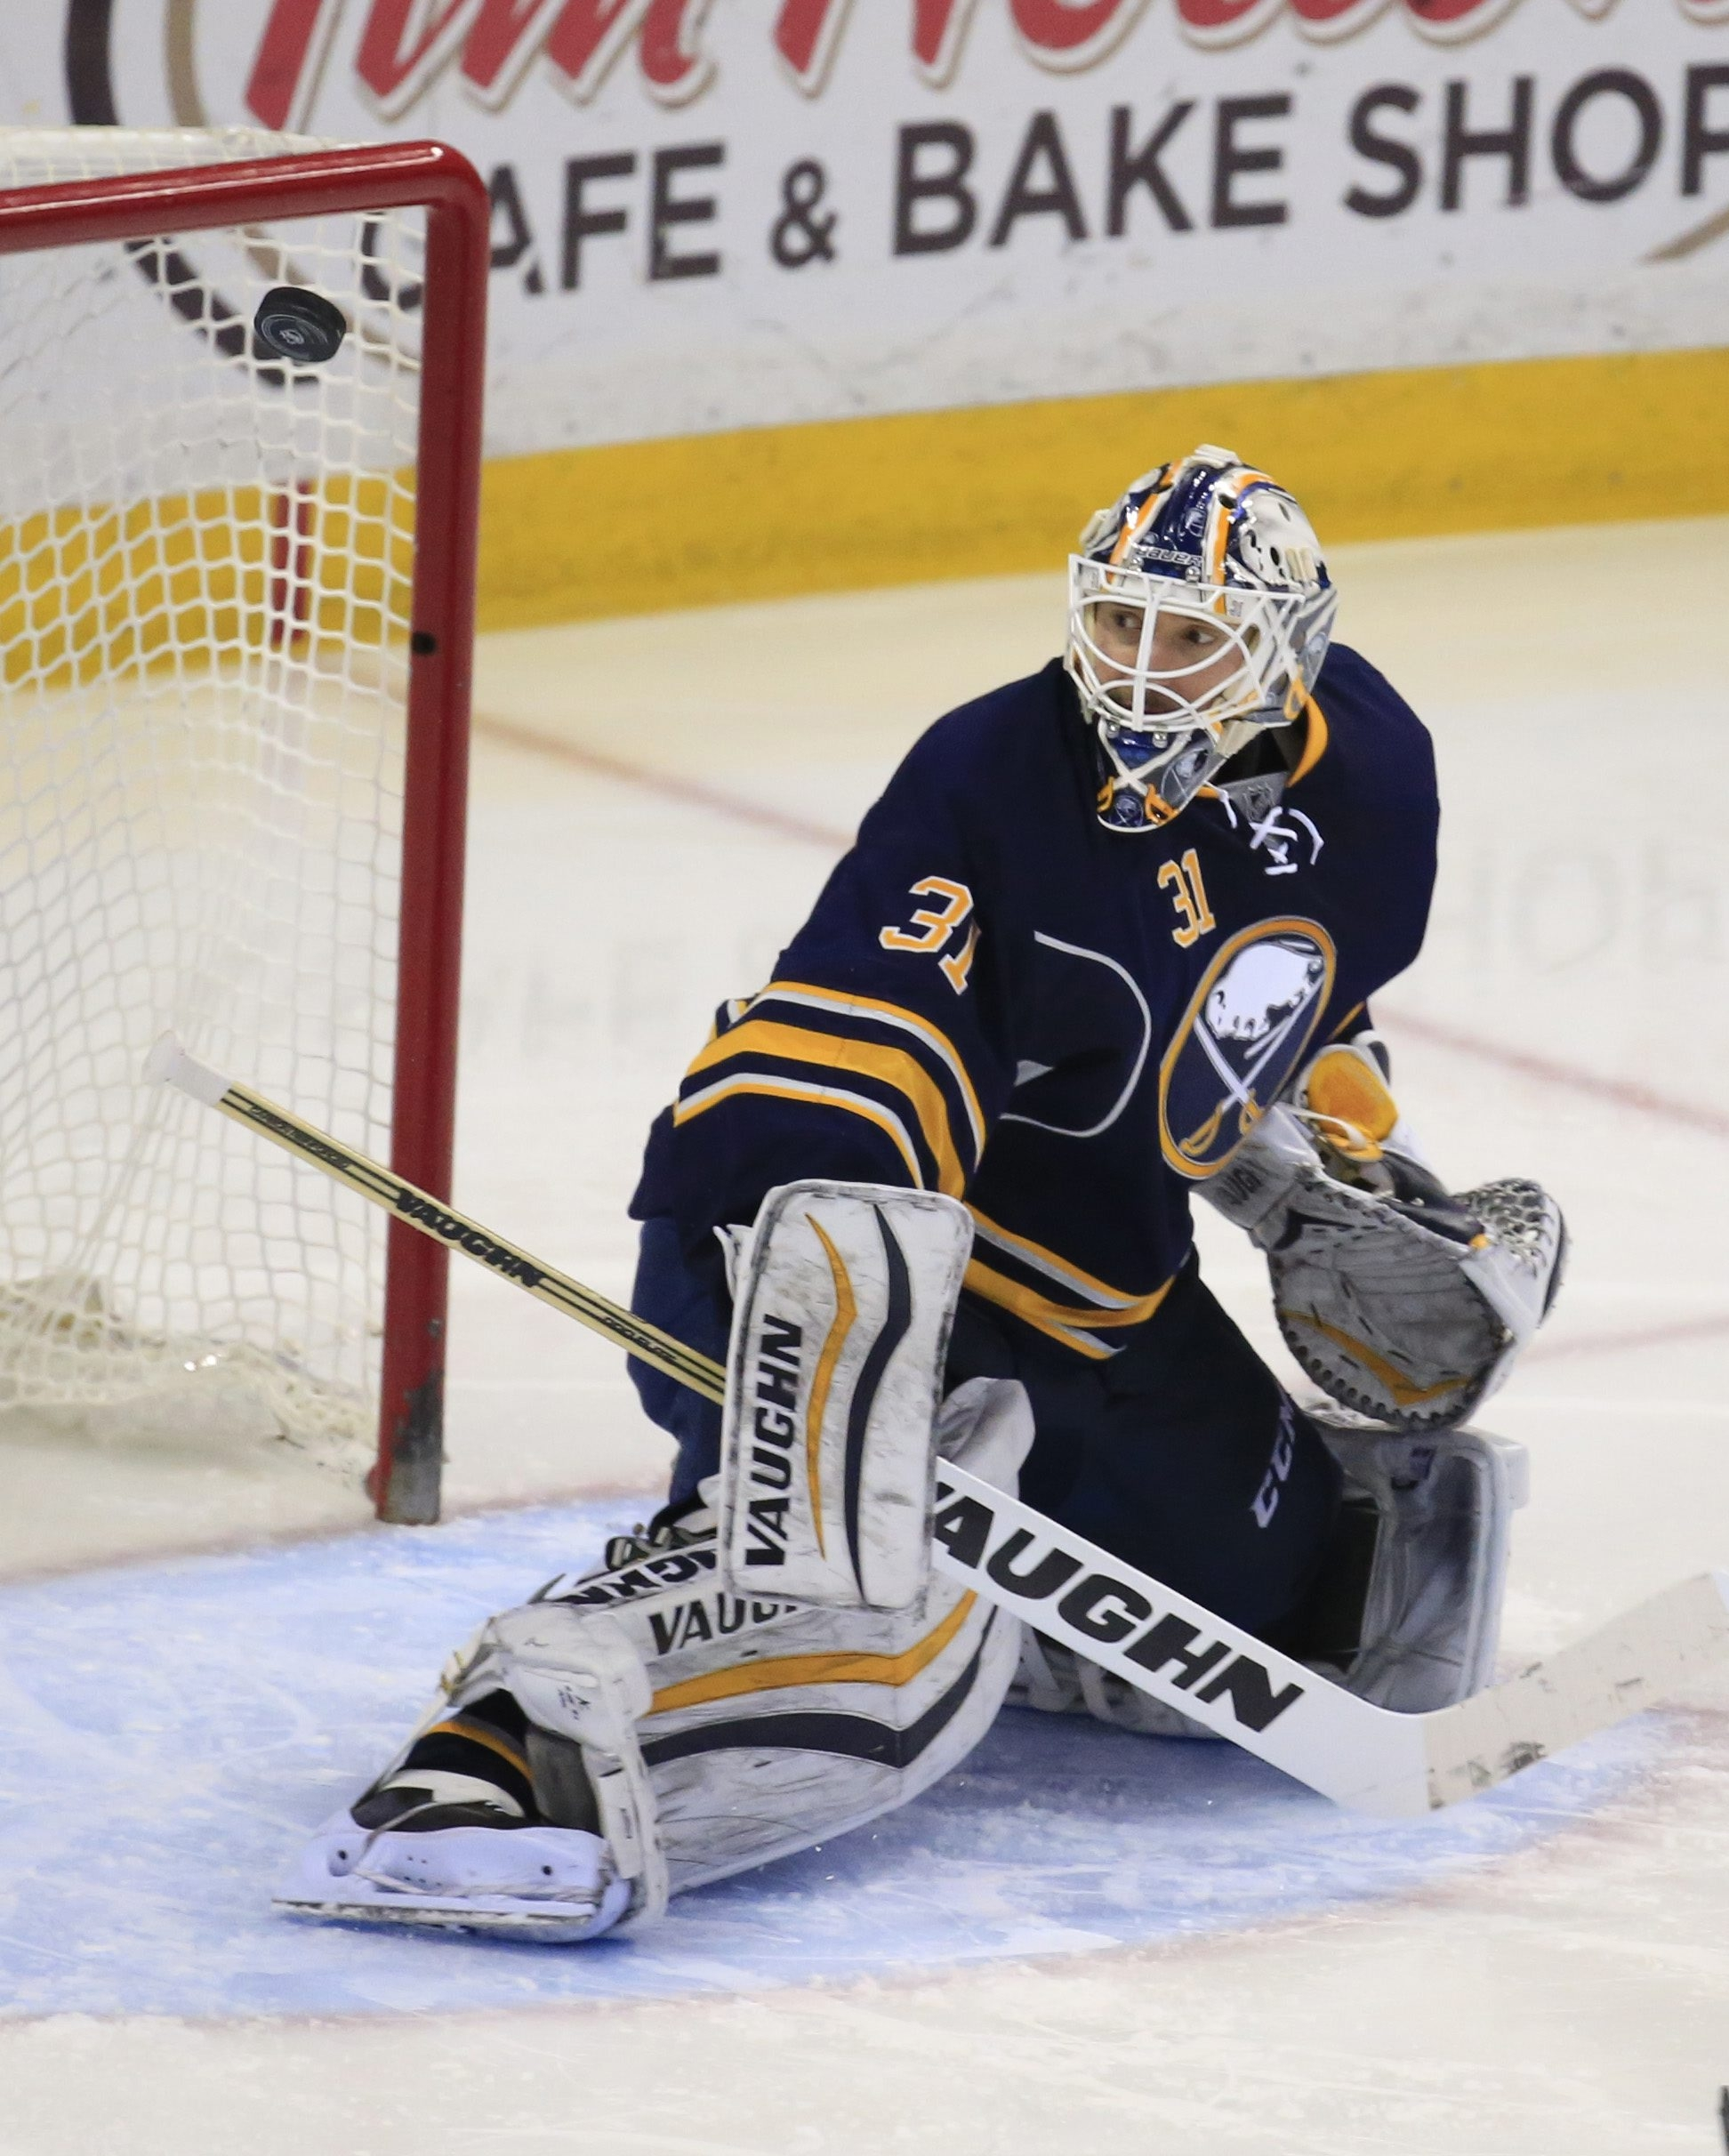 Chad Johnson makes a save during the Sabres' victory over Toronto, his career-best 20th win of the season.